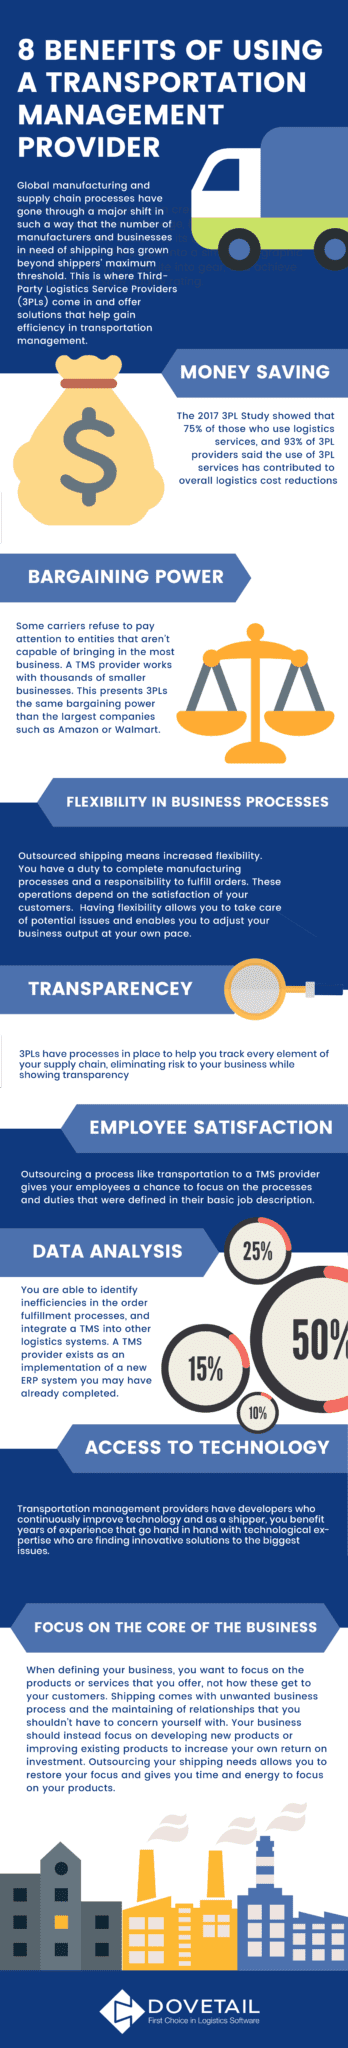 An infographic explaining the 8 benefits of using a transportation management provider.